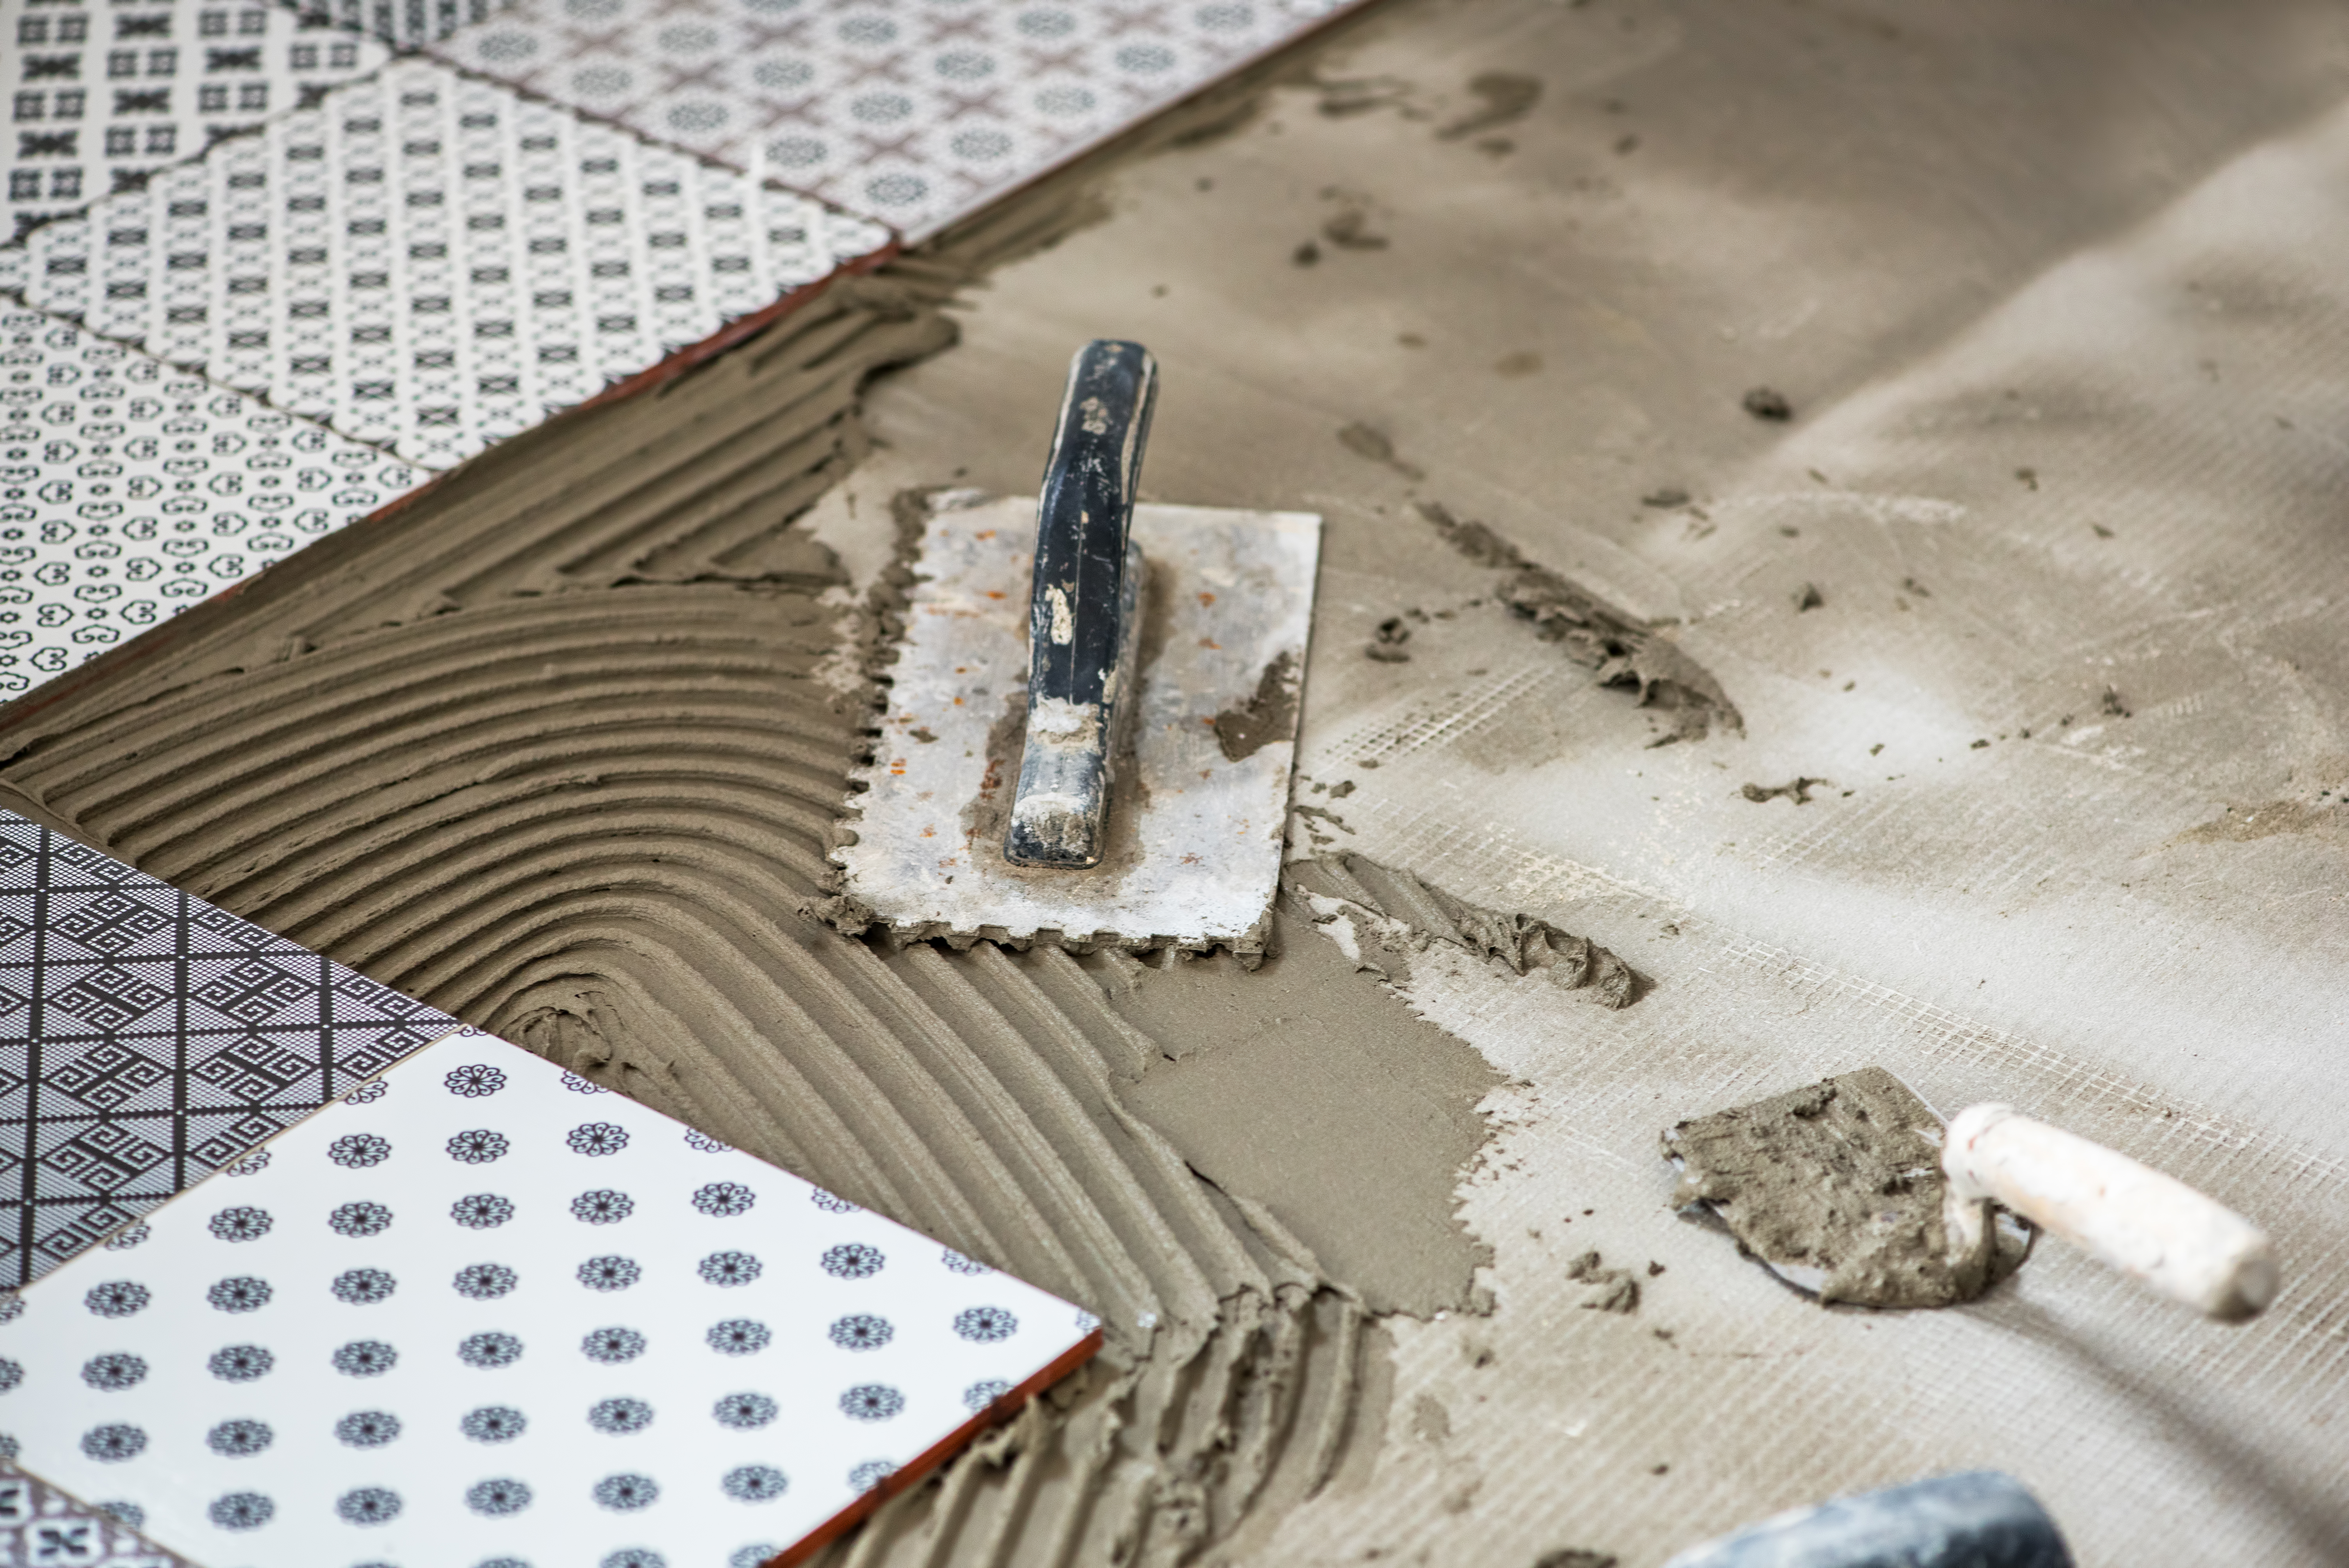 How to Put Screws in Ceramic Tile | Home Guides | SF Gate